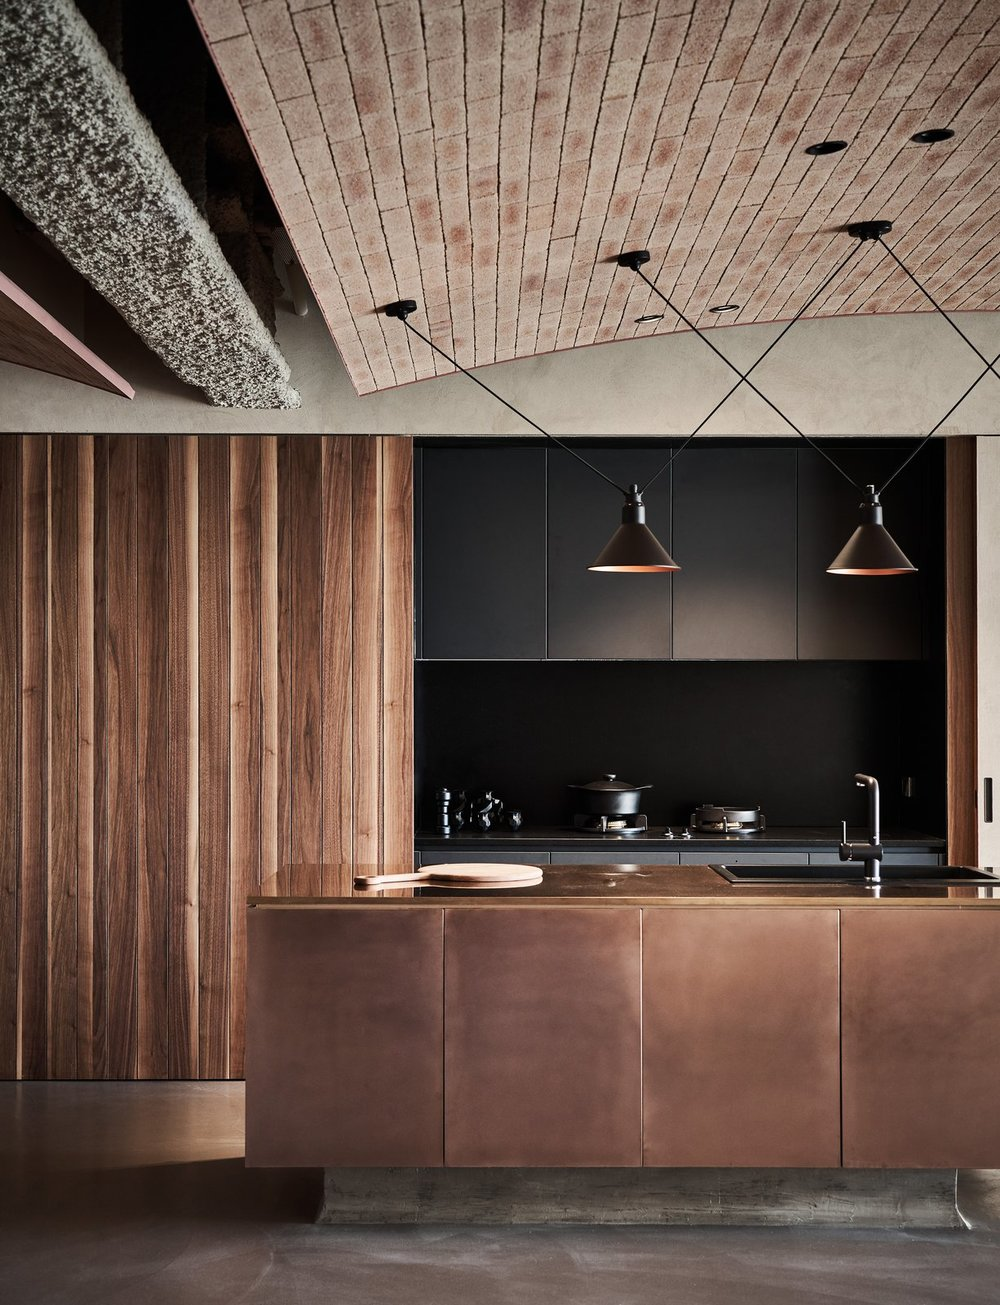 In the open kitchen, wood-paneled sliding doors conceal dark cabinetry, and together with a sleek, dark counter, and a shiny bronze-clad island with a sink, the kitchen becomes part of the overall design rather than simply an area of utility.  Photo Courtesy of Hey!Cheese